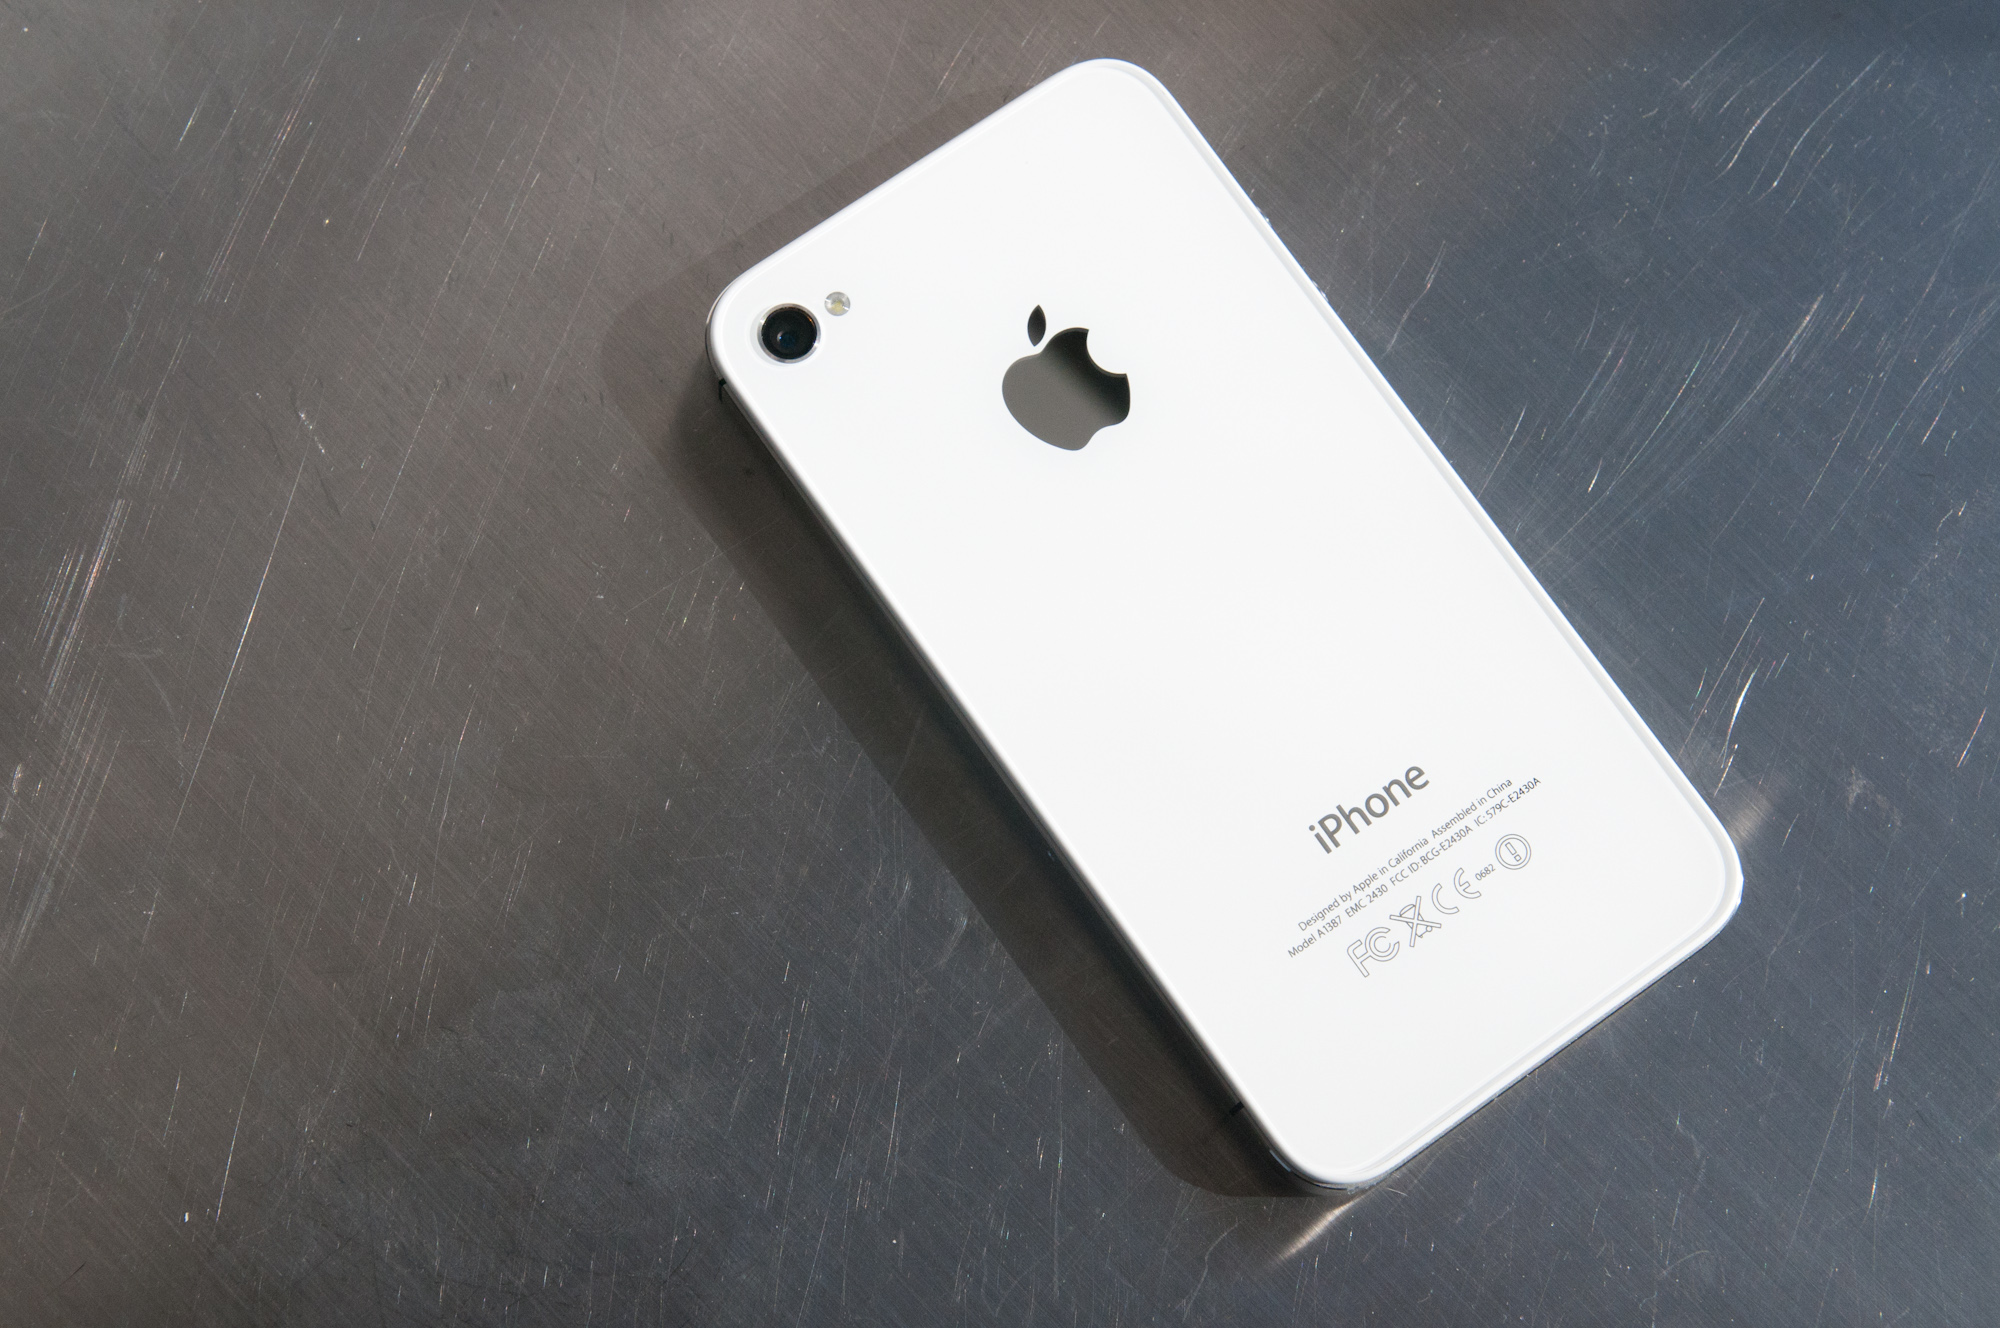 Apple iPhone 4S: Thoroughly Reviewed